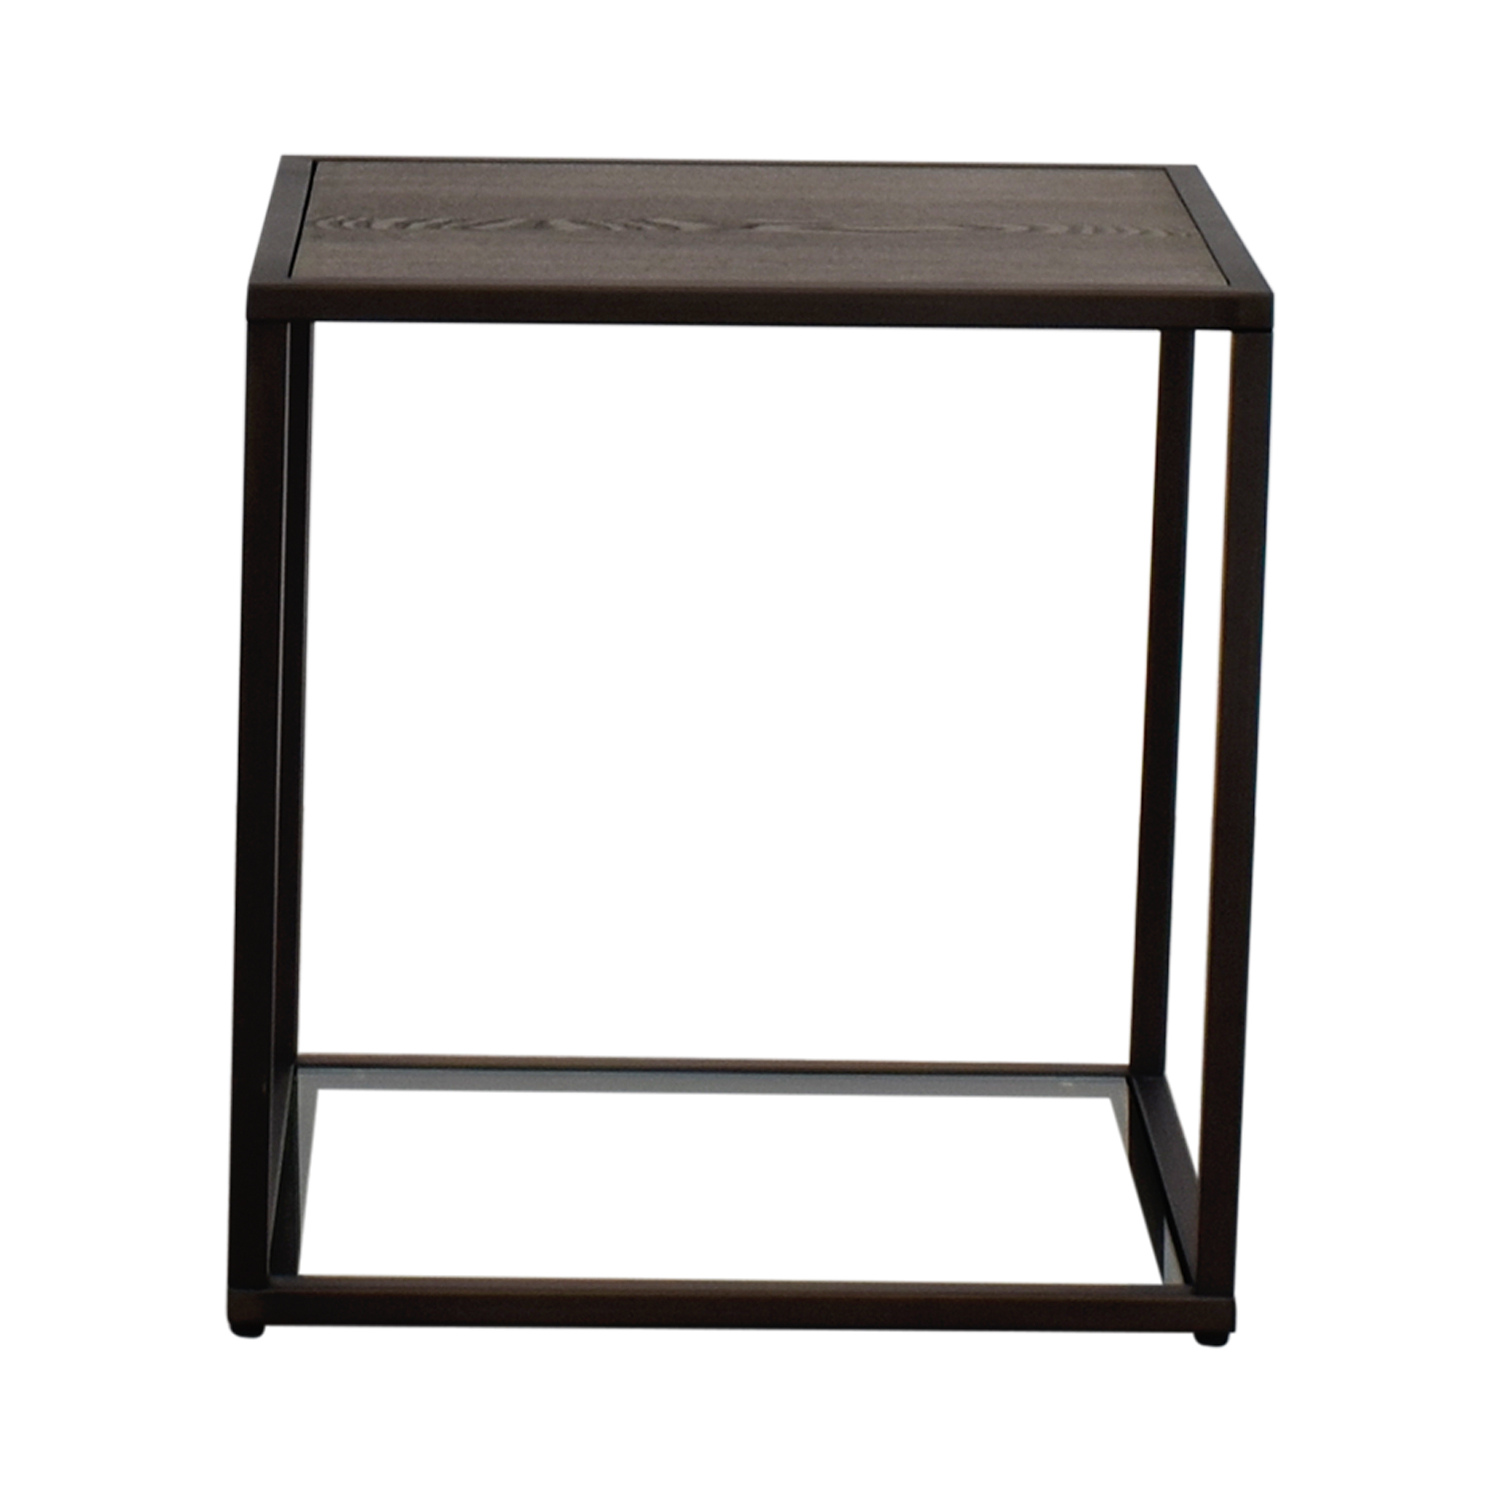 Crate & Barrel Crate & Barrel Switch Side Table nyc